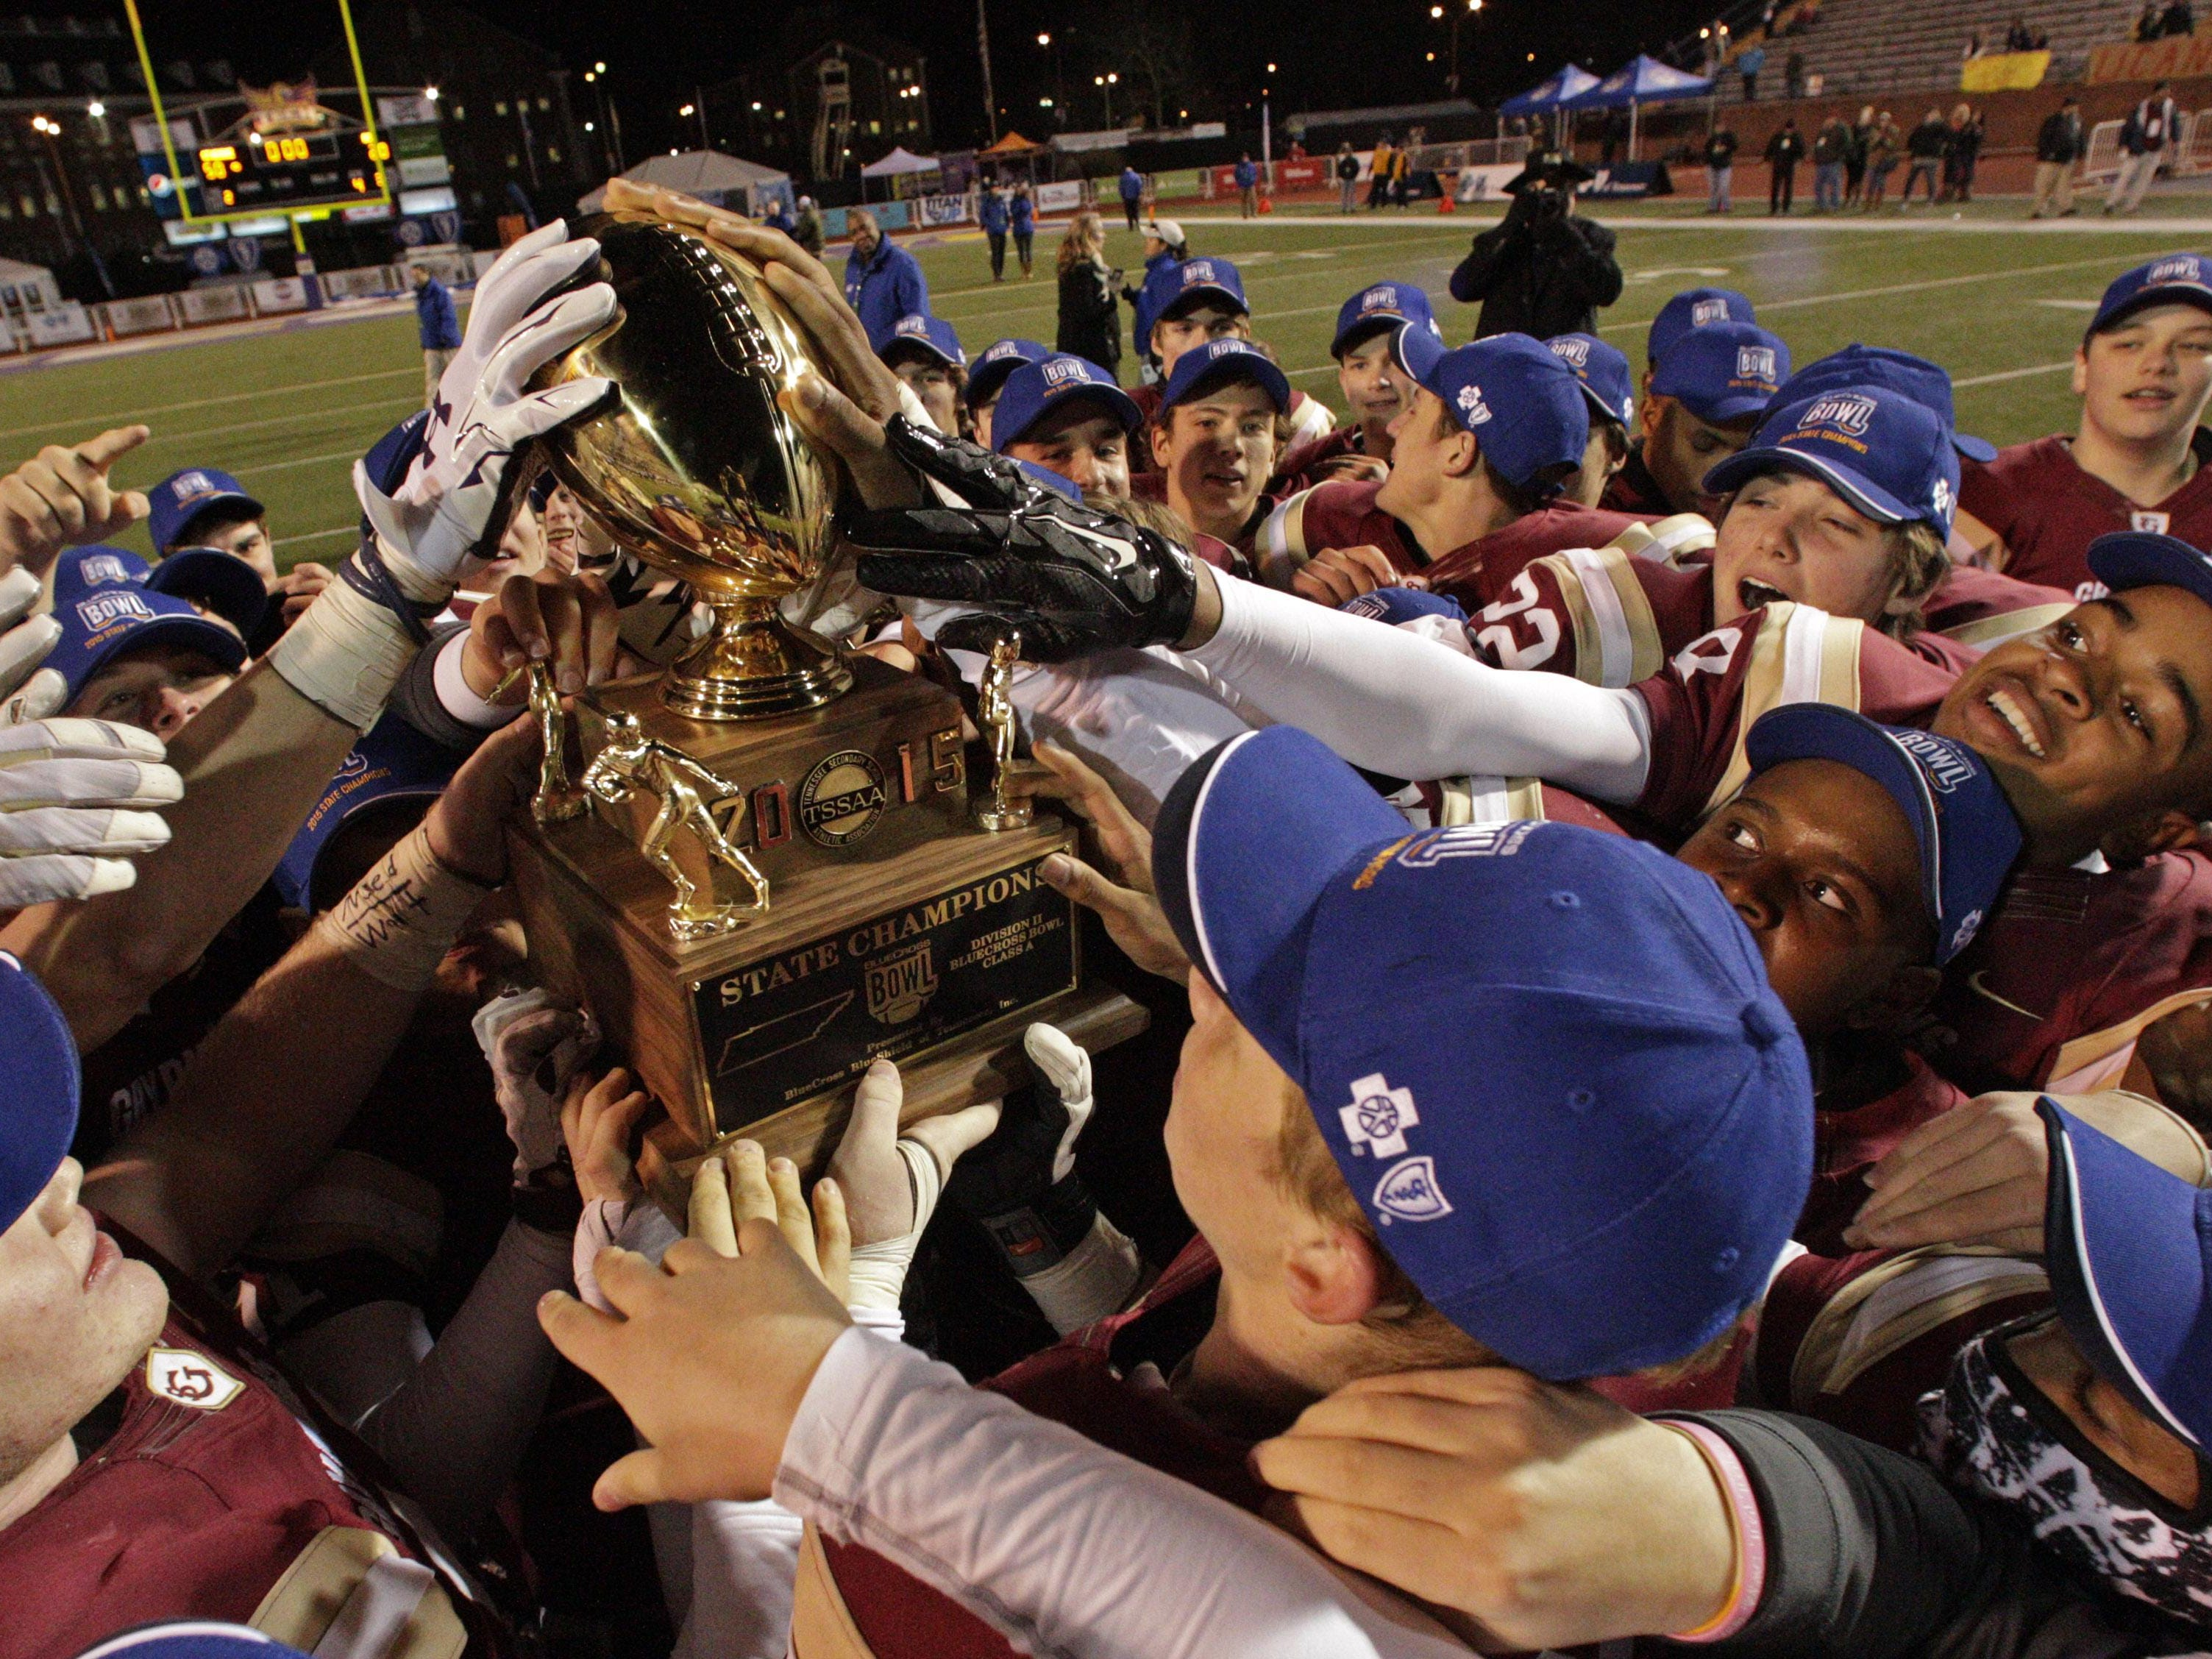 St. George's players celebrate their 50-20 victory Thursday.